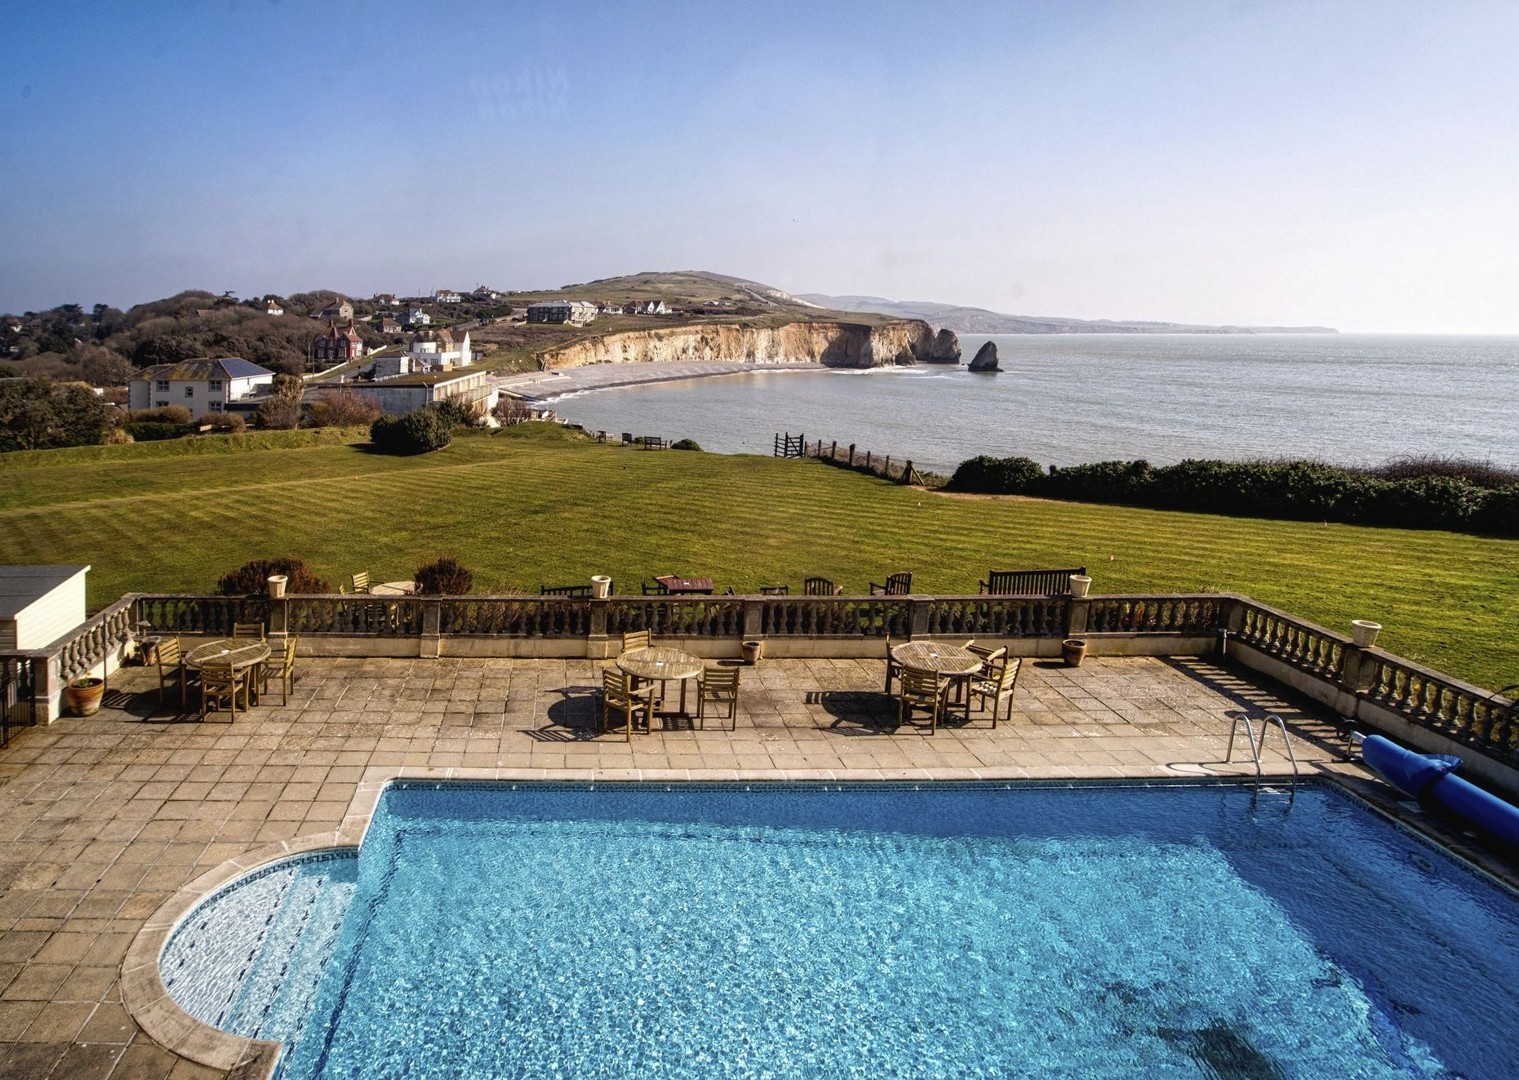 leisure-cycling-holiday-coast.jpg - UK - Isle of Wight - Freshwater Bay - Self-Guided Leisure Cycling Holiday - Leisure Cycling